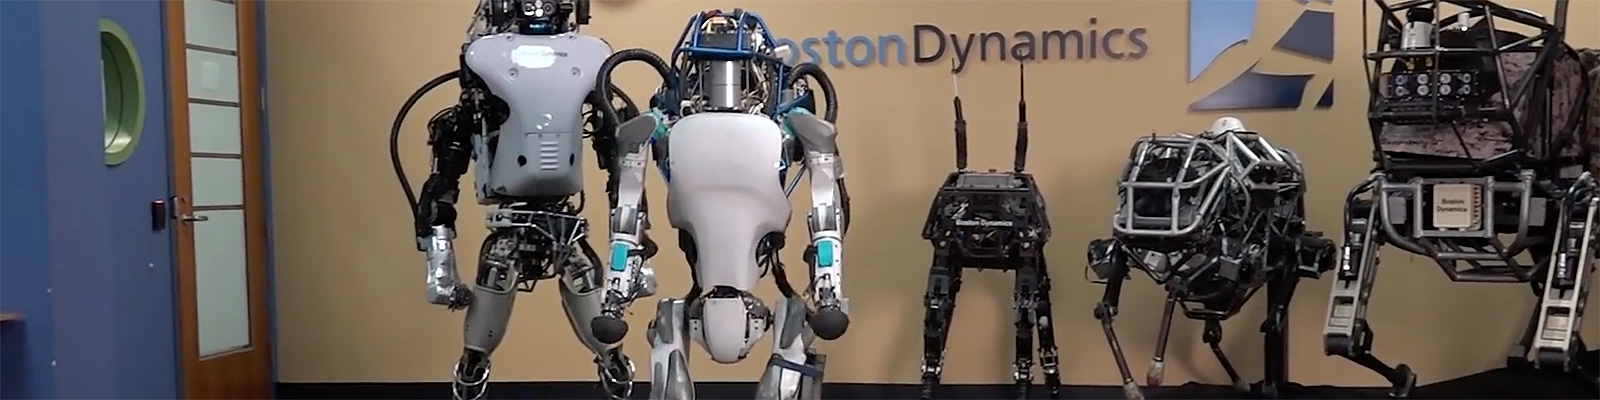 Atlas, The Next Generation(Boston Dynamics)